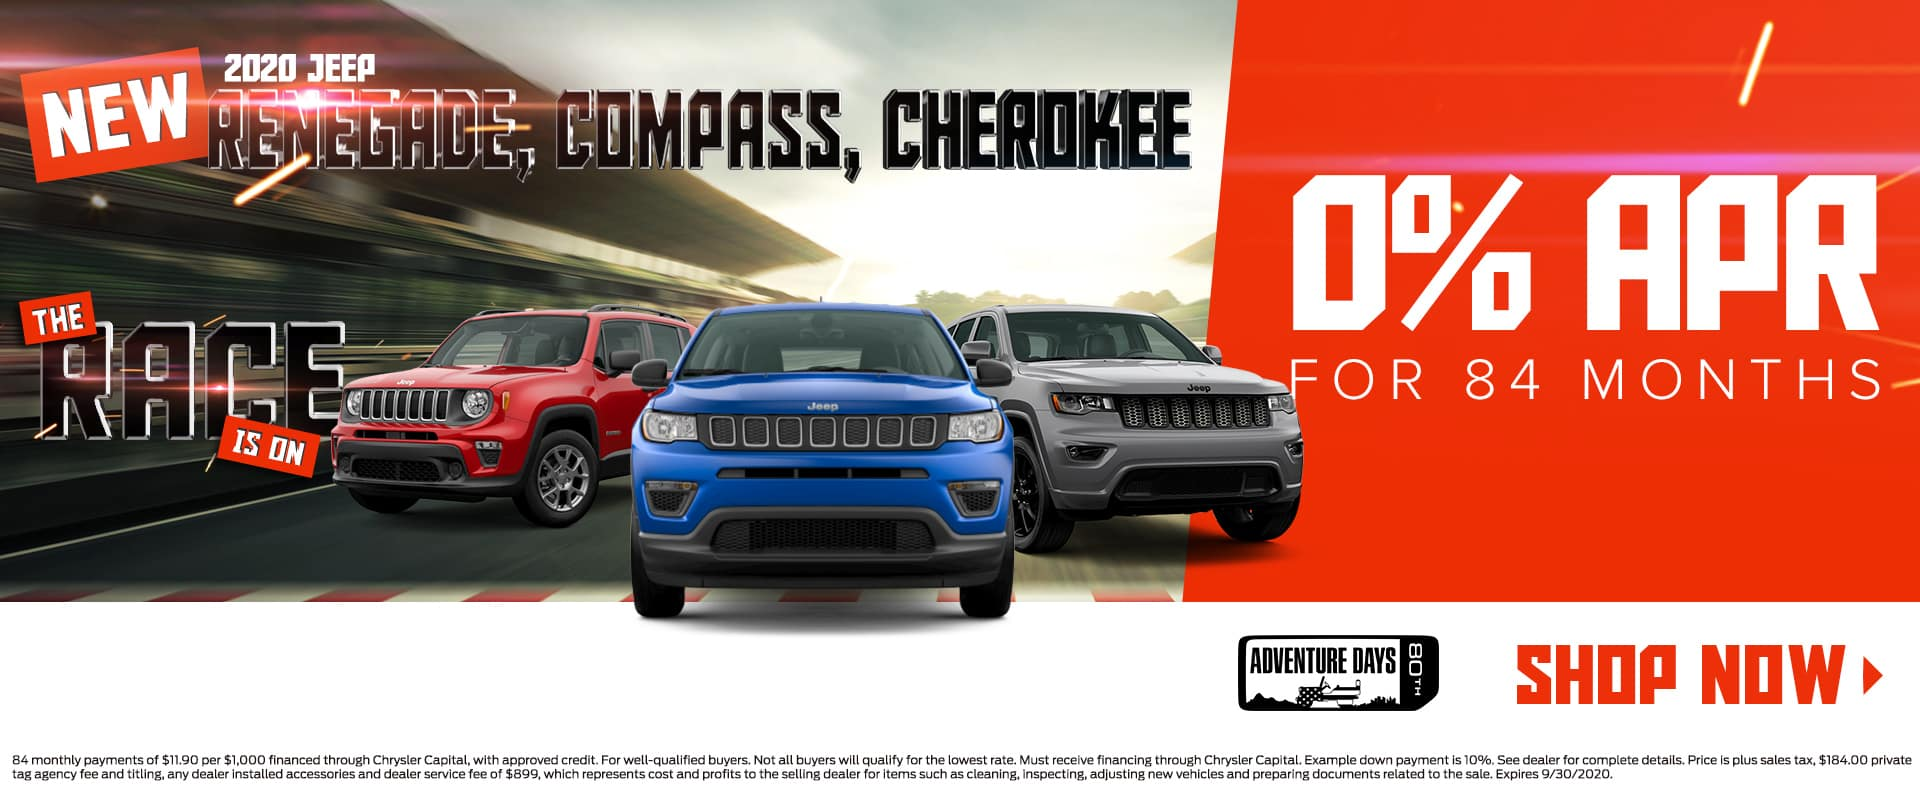 New 2020 Jeep Renegade, Compass, Cherokee | 0% For 84 Months | The Race Is On | 80th Adventure Days